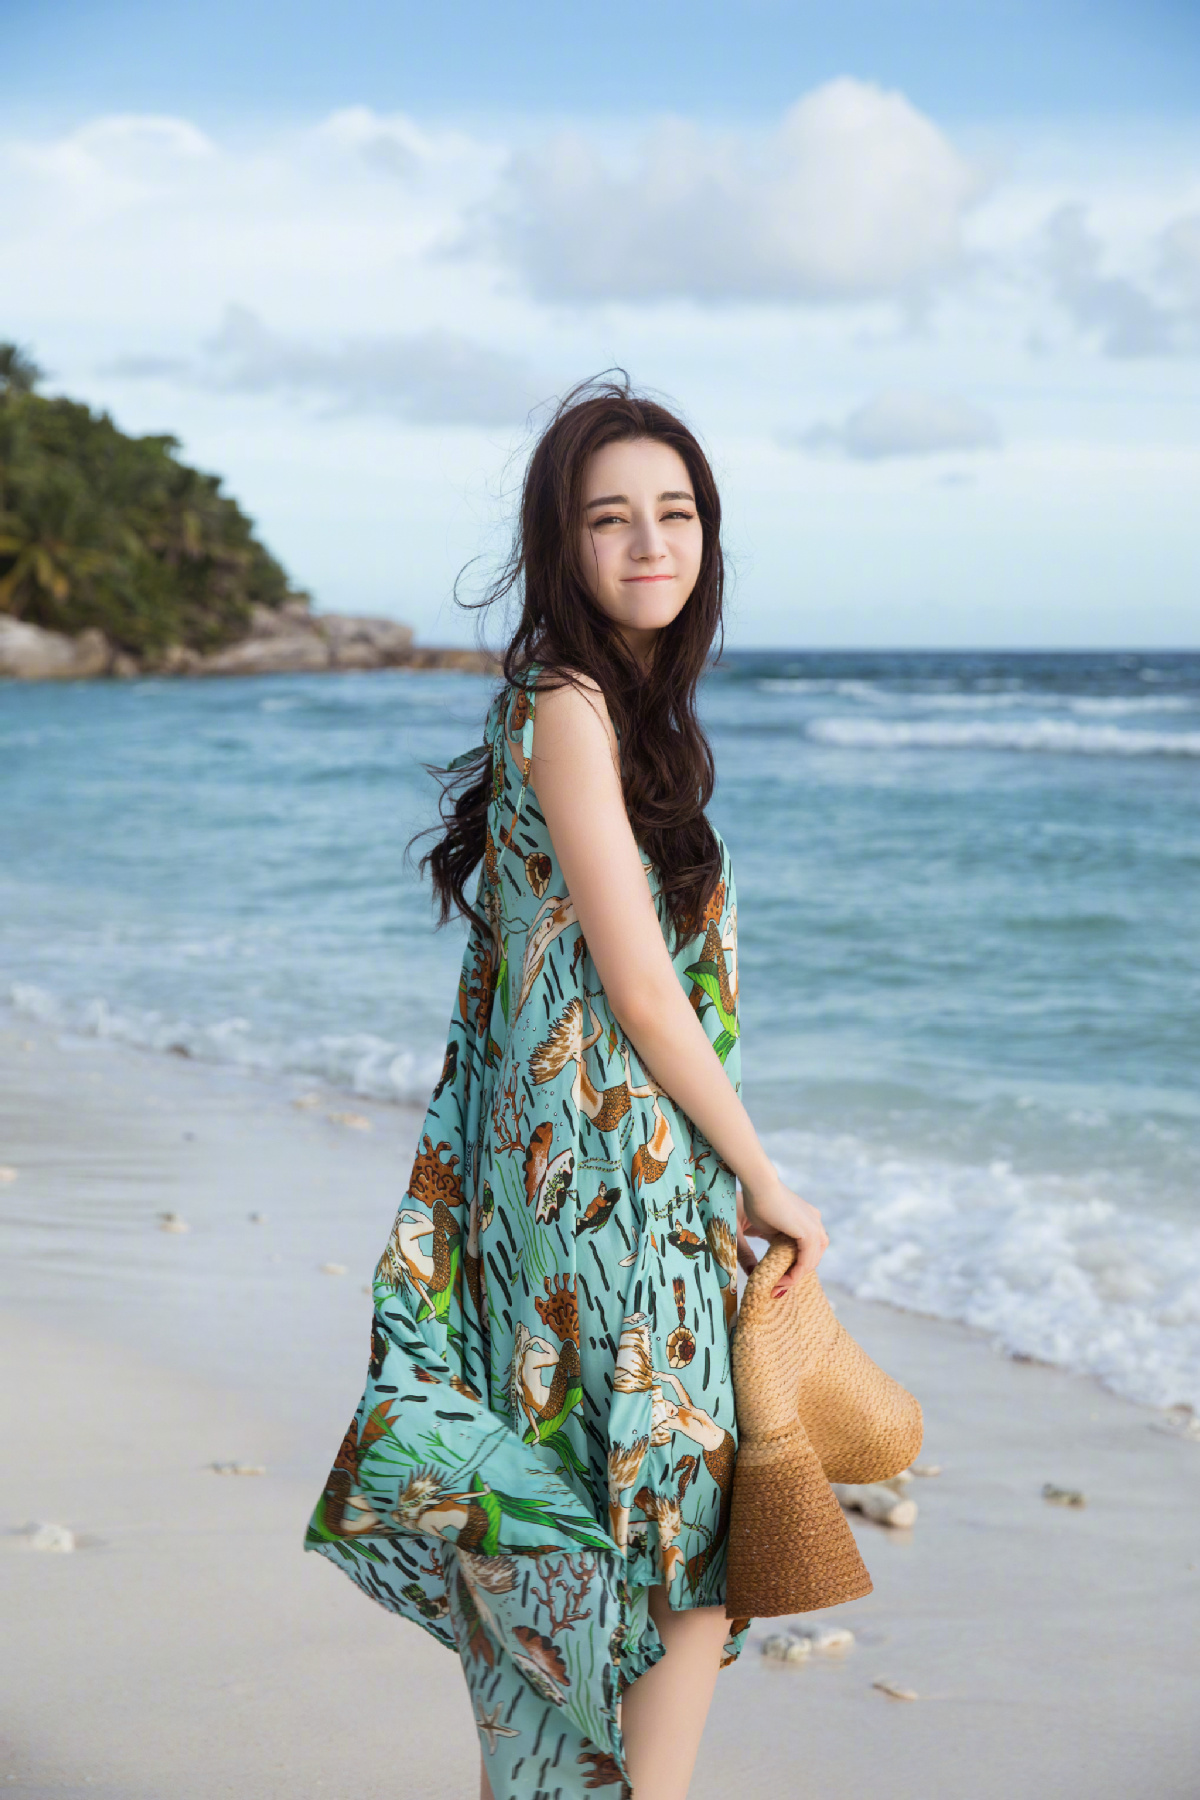 Discussion on this topic: Margaret Maggie Wilson (b. 1989), dilraba-dilmurat/